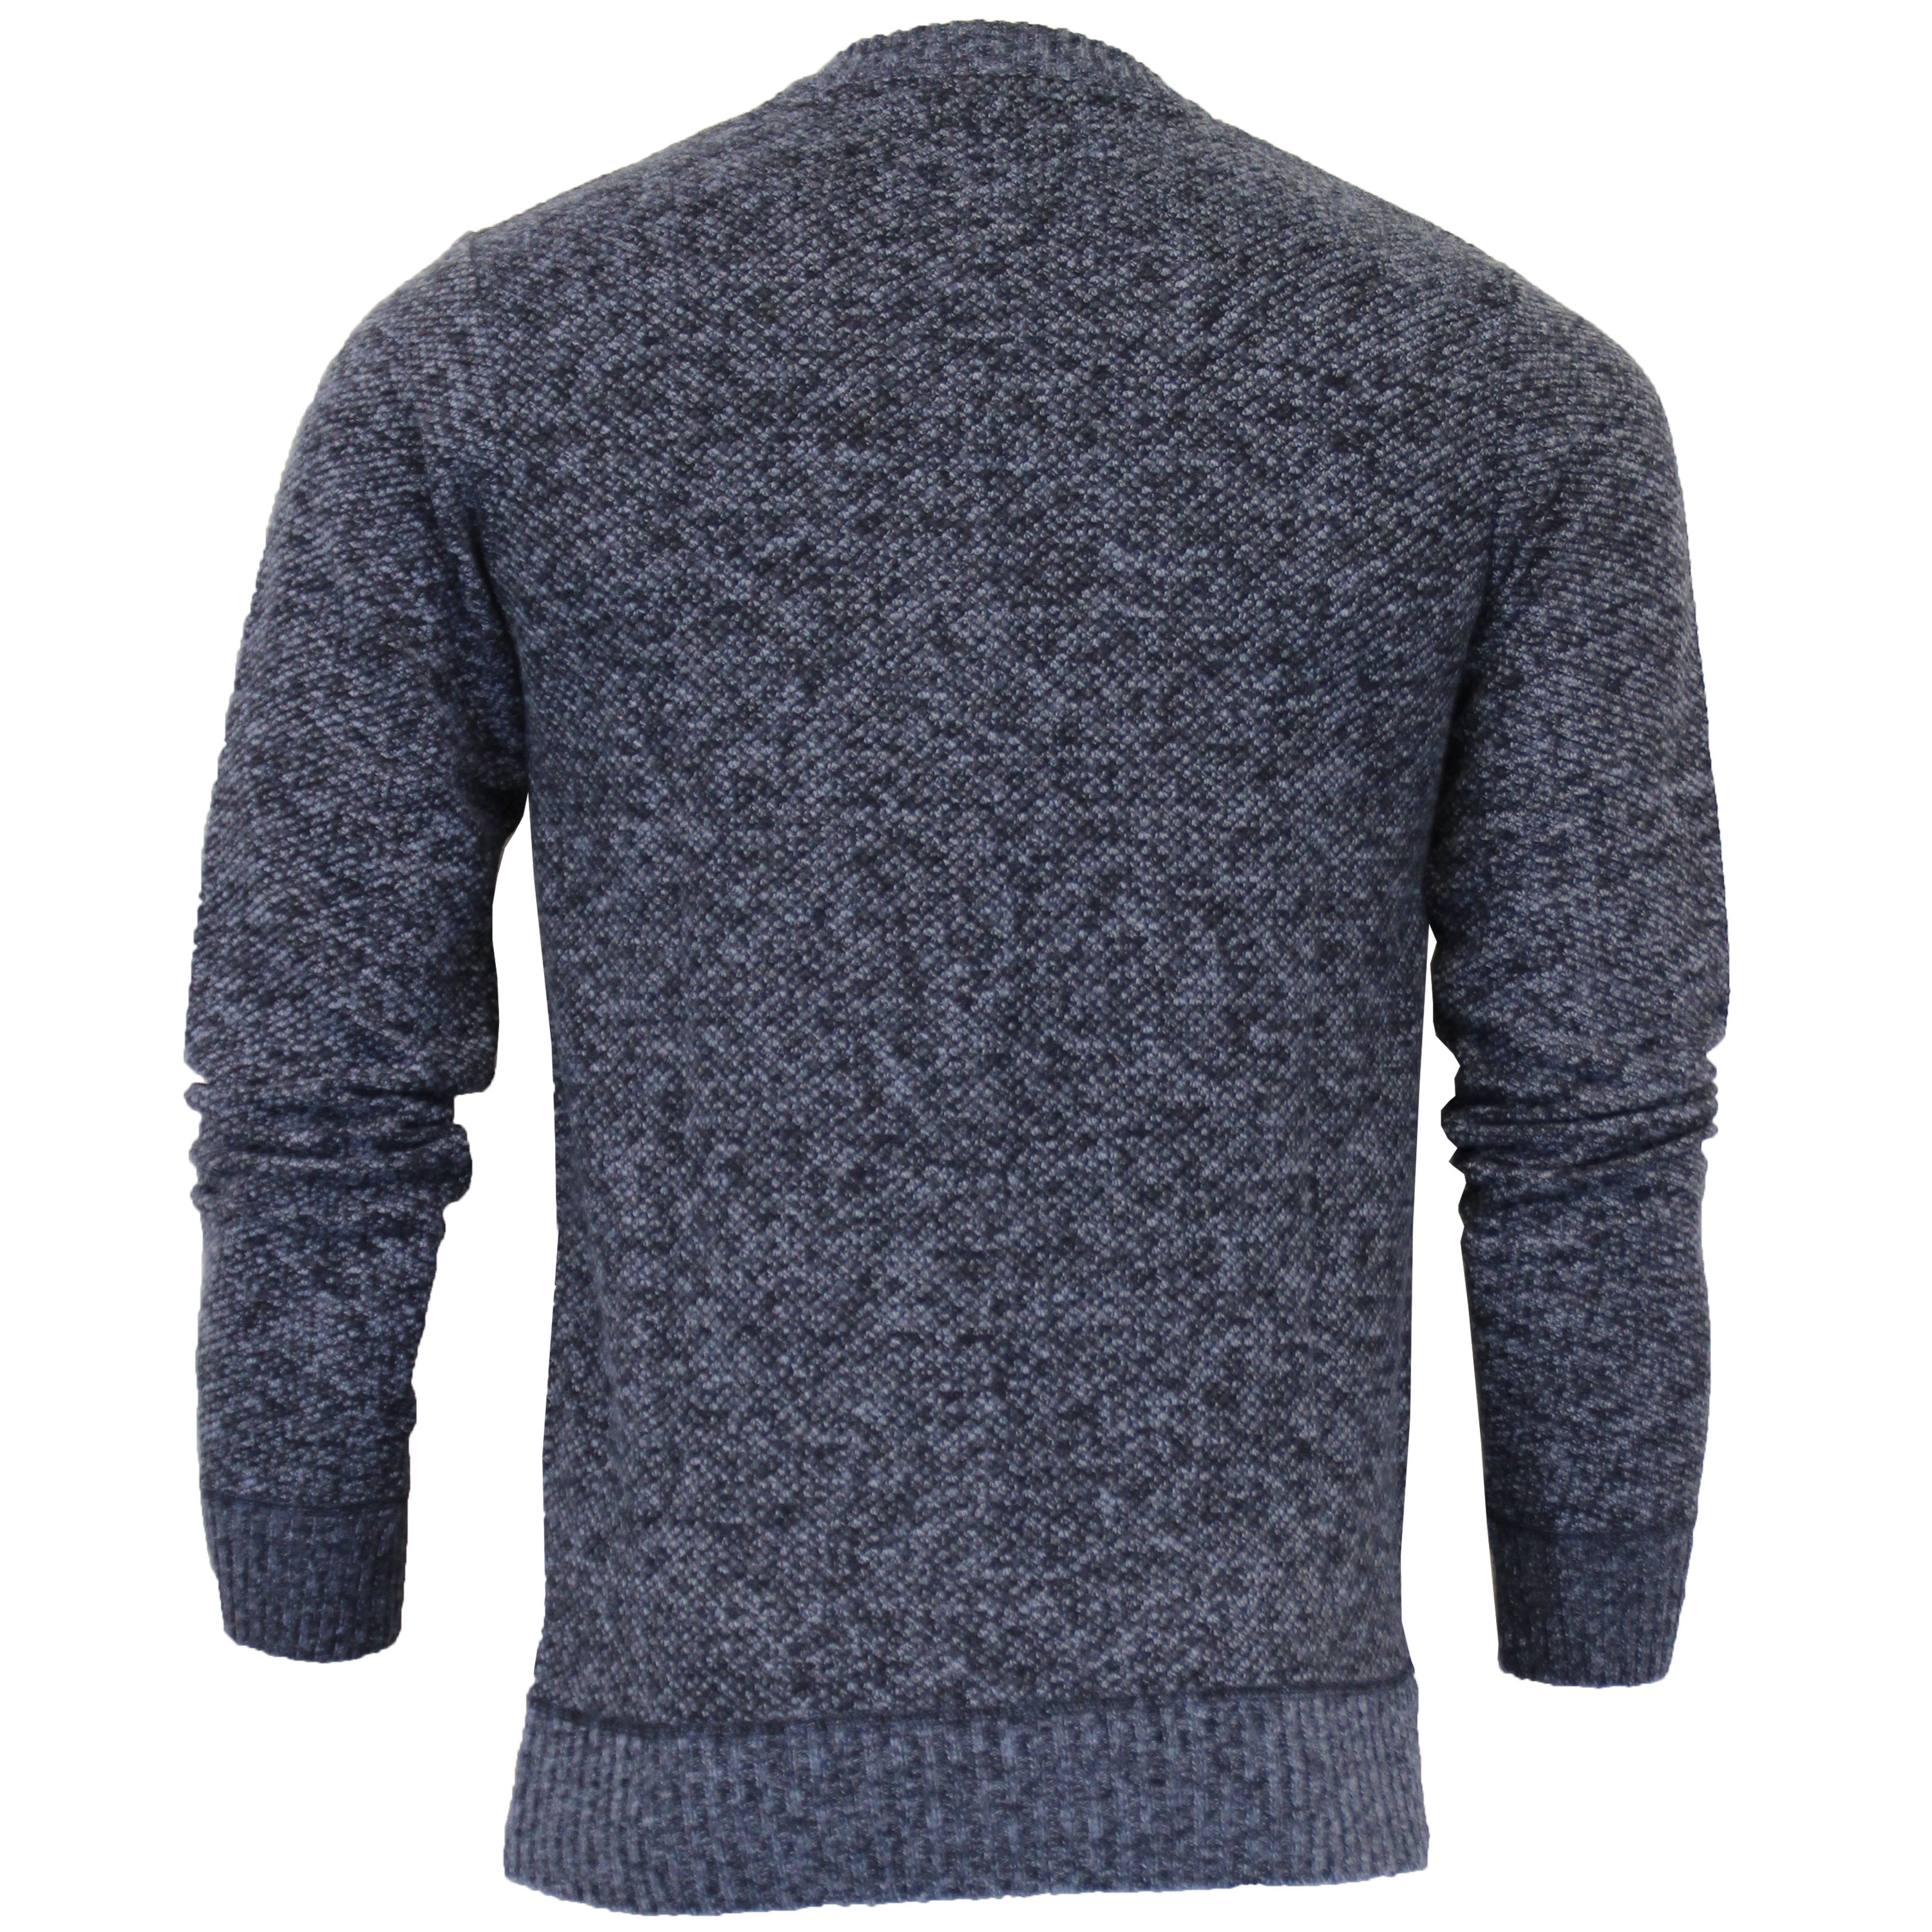 Mens-Jumper-Brave-Soul-Knitted-Sweater-Pullover-GOODWIN-Crew-Neck-Top-Winter-New thumbnail 15